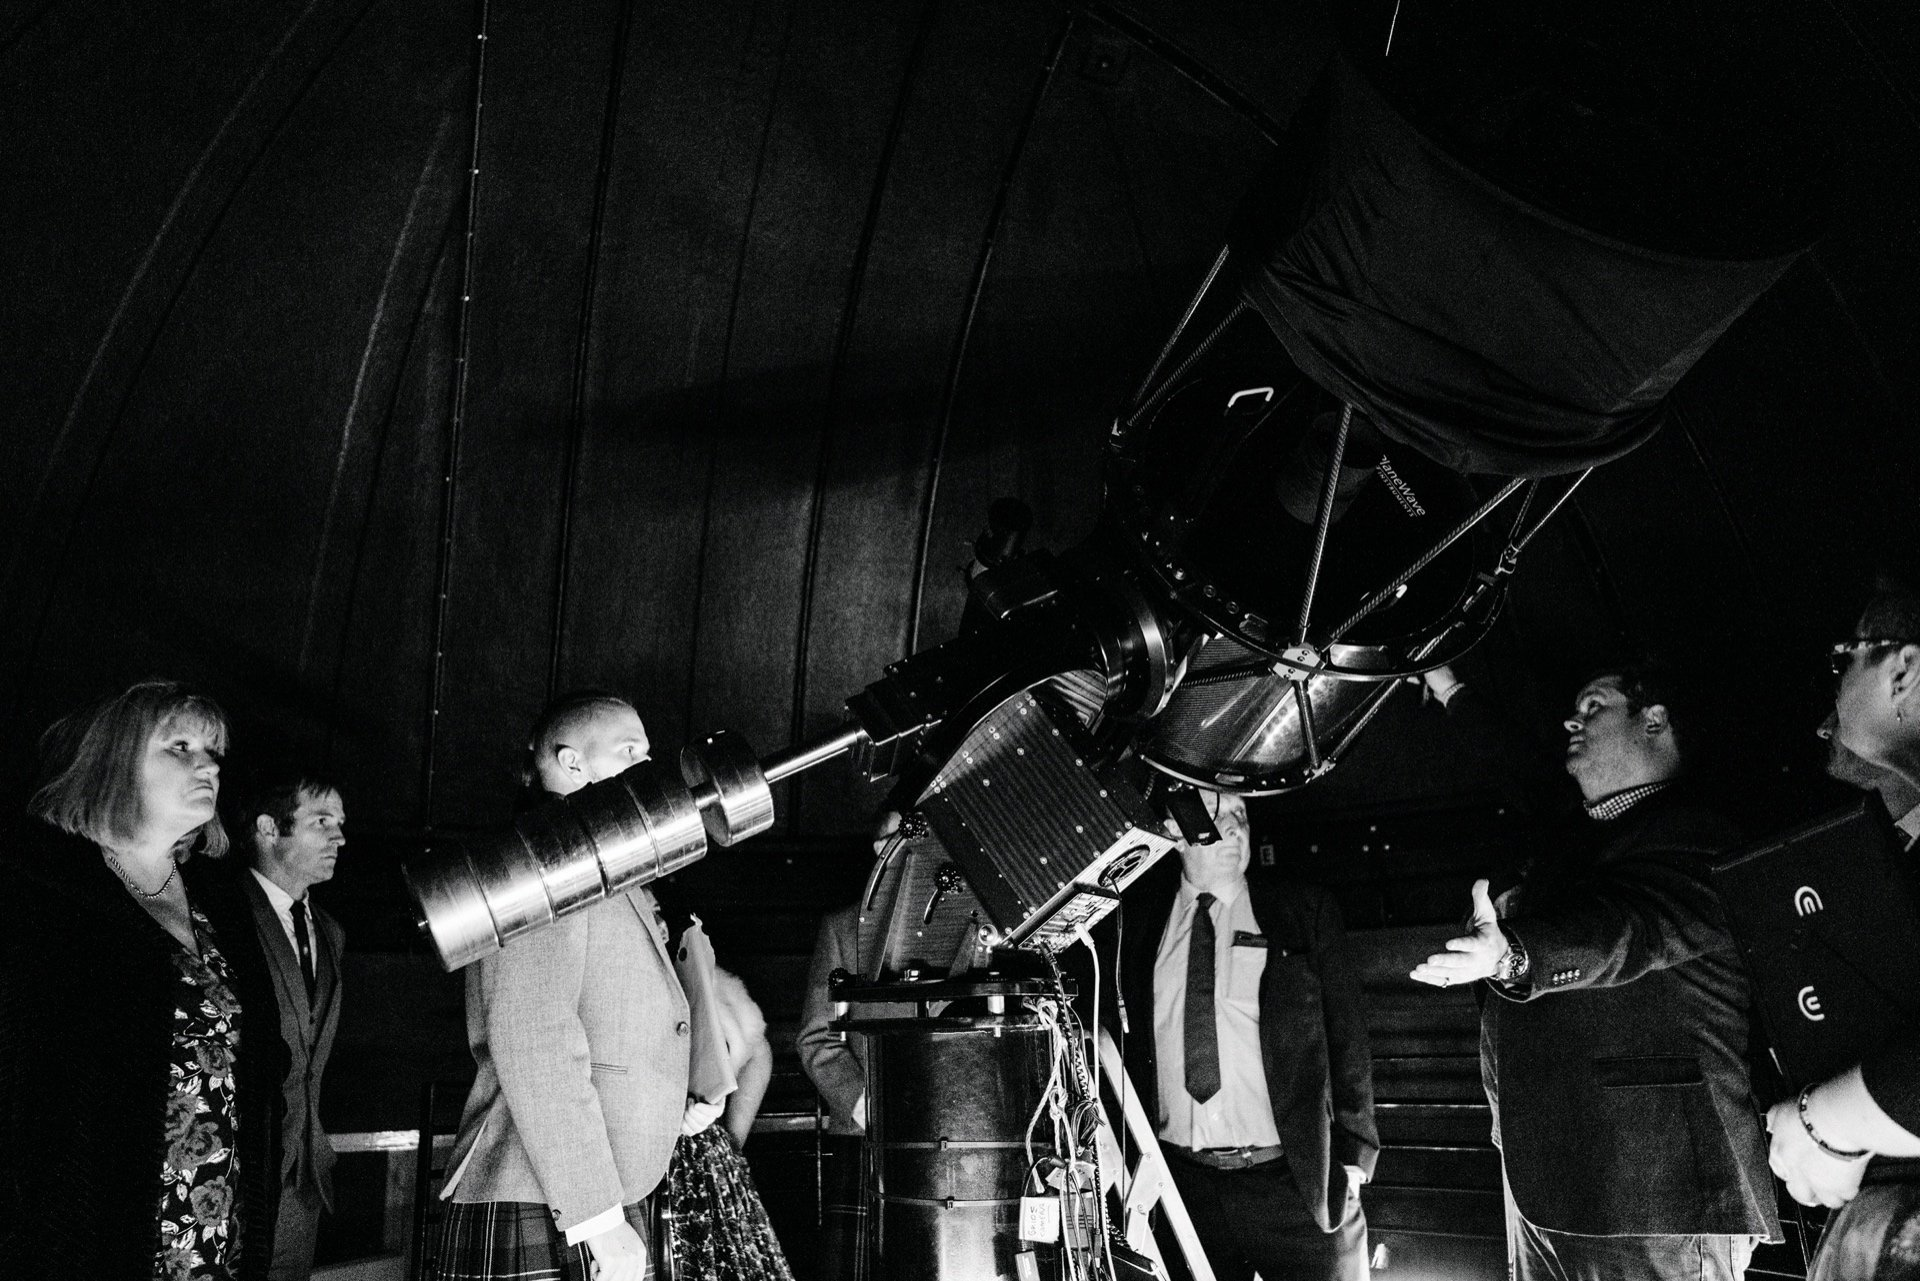 telescope a the dark sky observatory guests watching astronomer